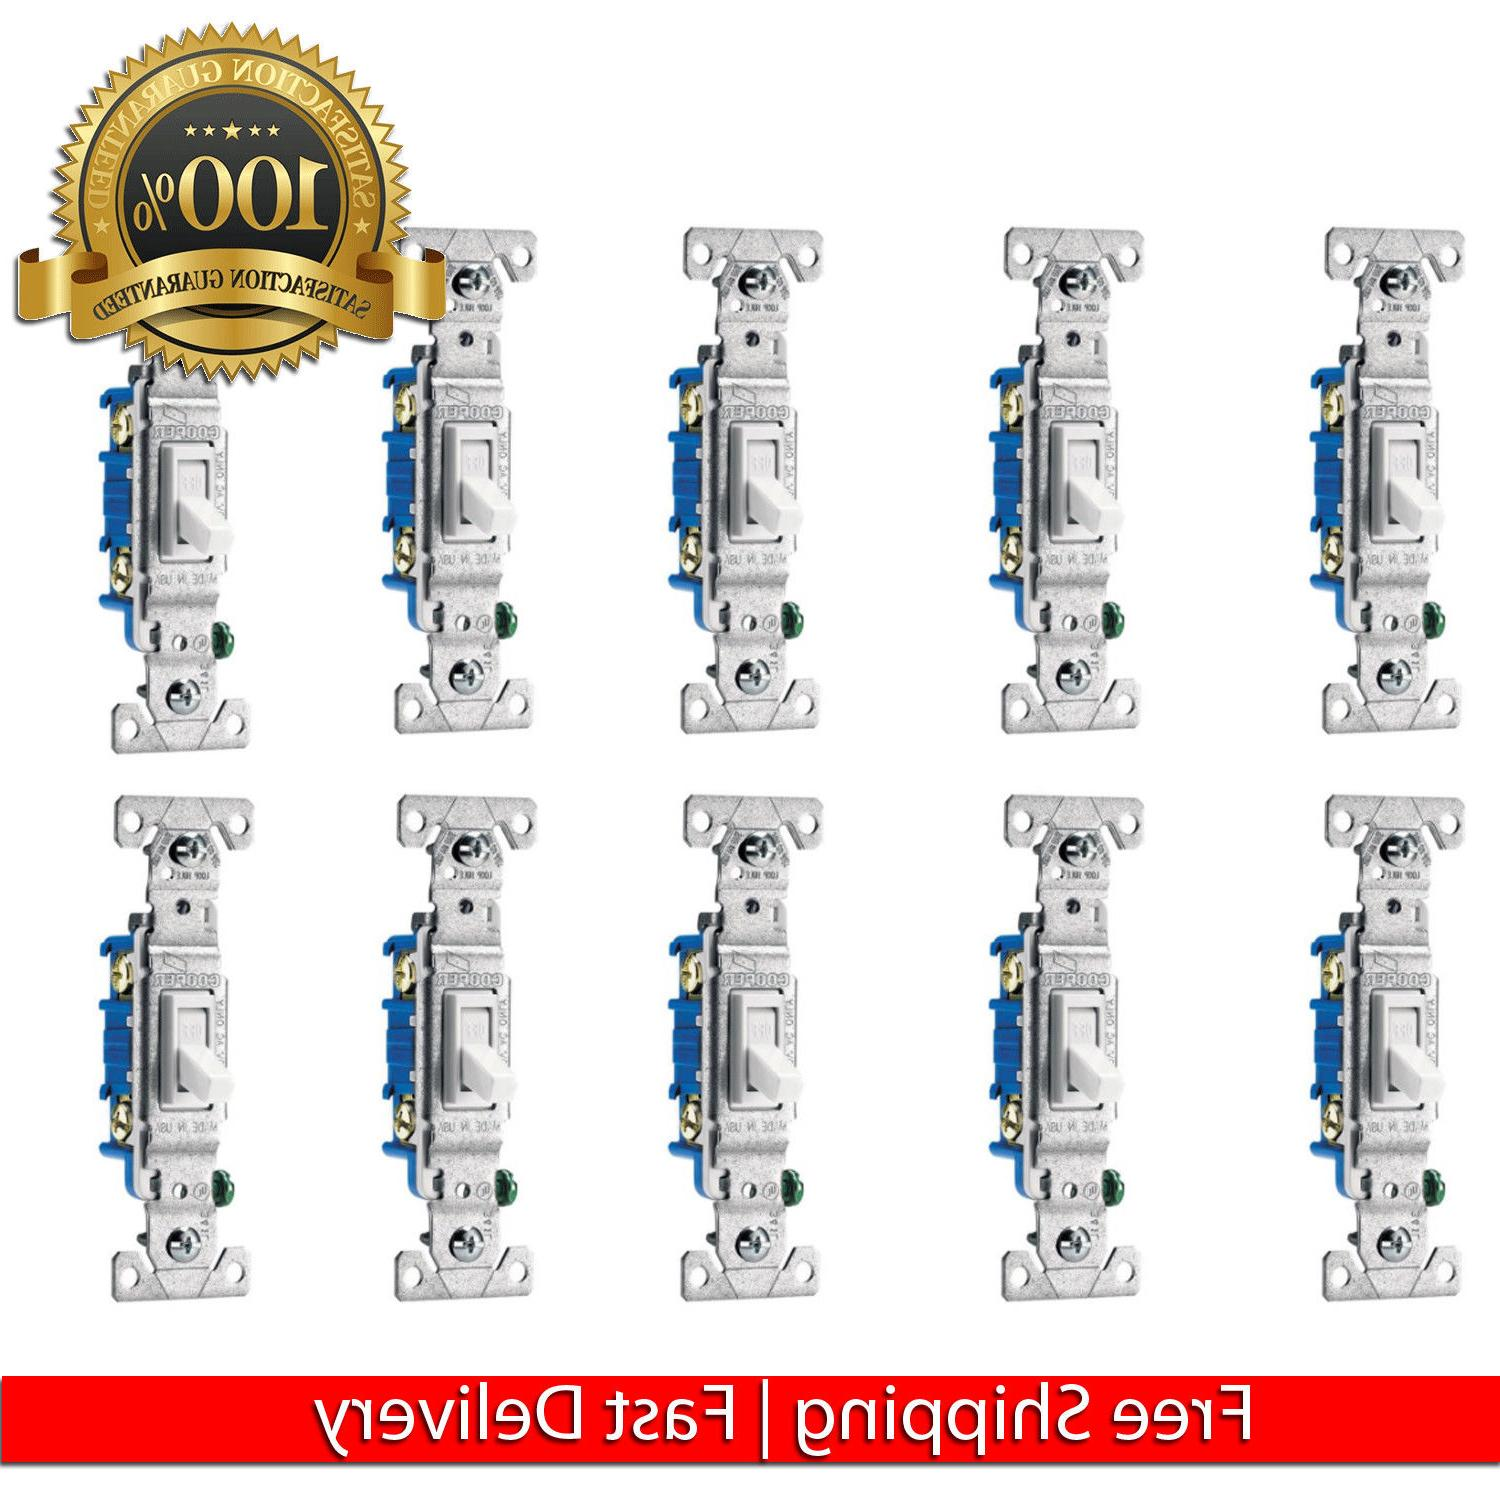 10 PCS 15 AMP SINGLE POLE LIGHT SWITCH INDOOR HOME TOGGLE EL